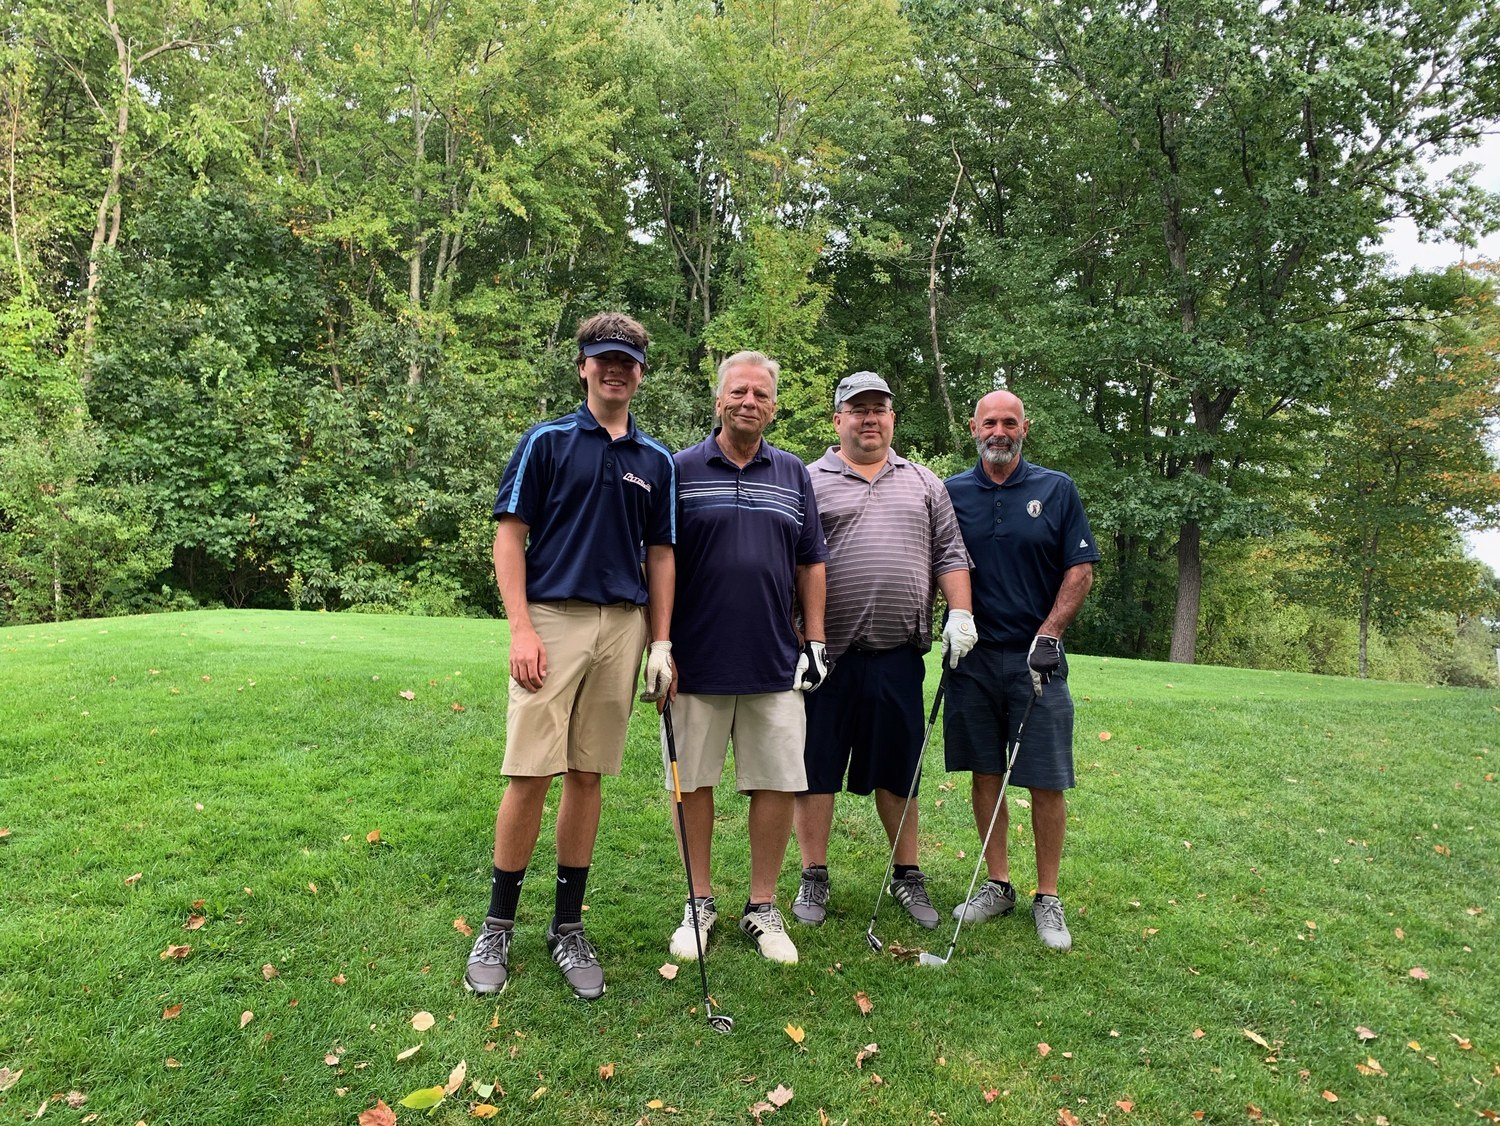 THE 28TH ANNUAL CATALDO SWING FORE HOPE GOLF TOURNAMENT gallery image #4